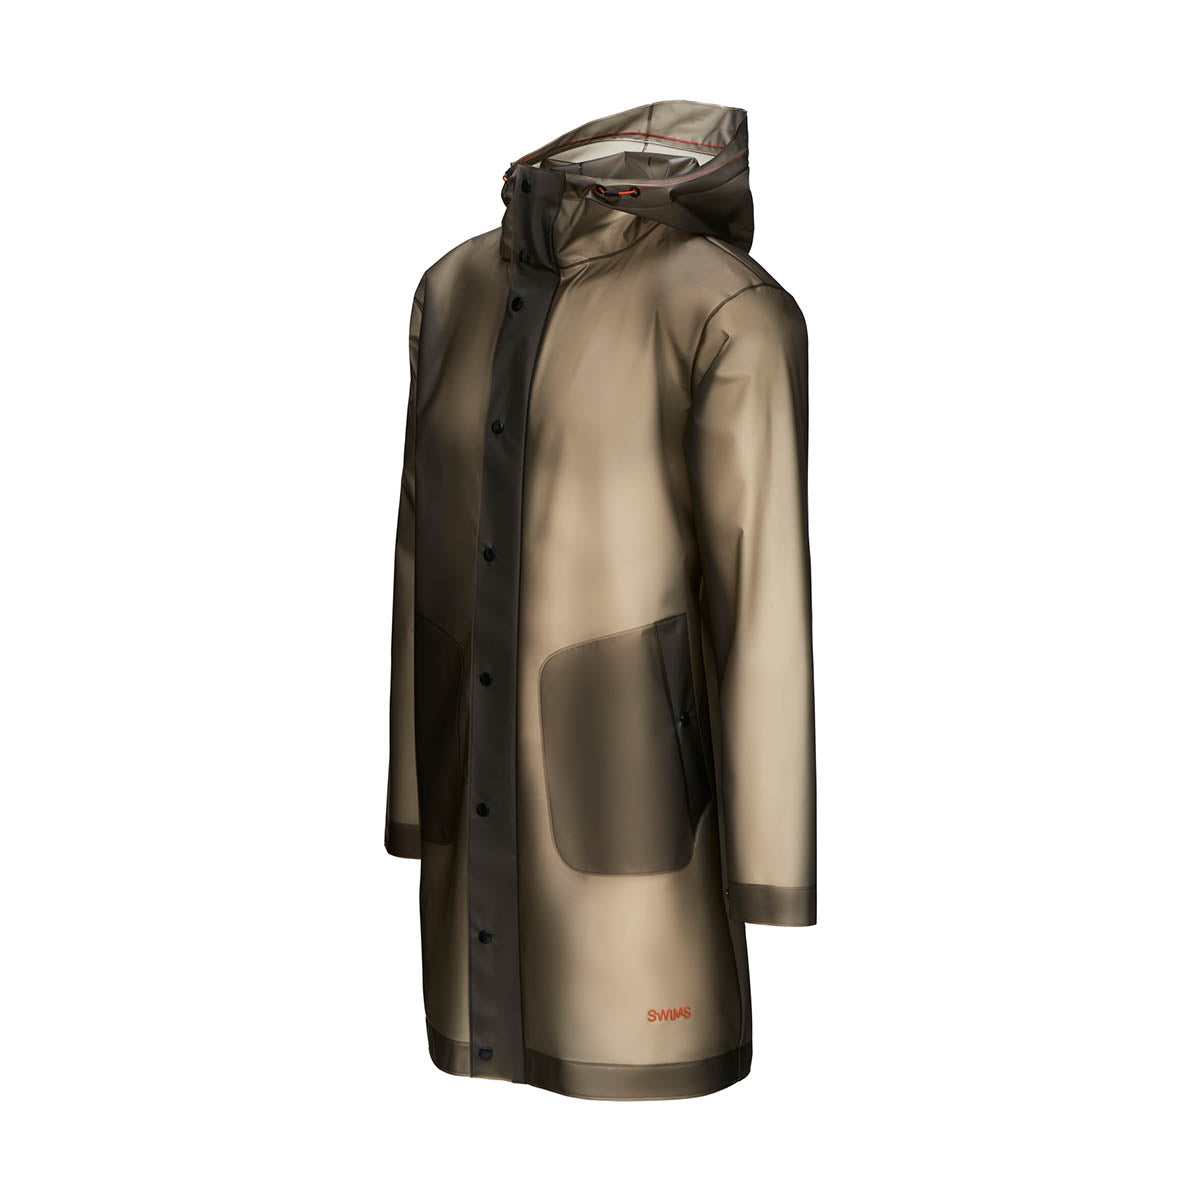 Basel Raincoat - background::white,variant::Graphite